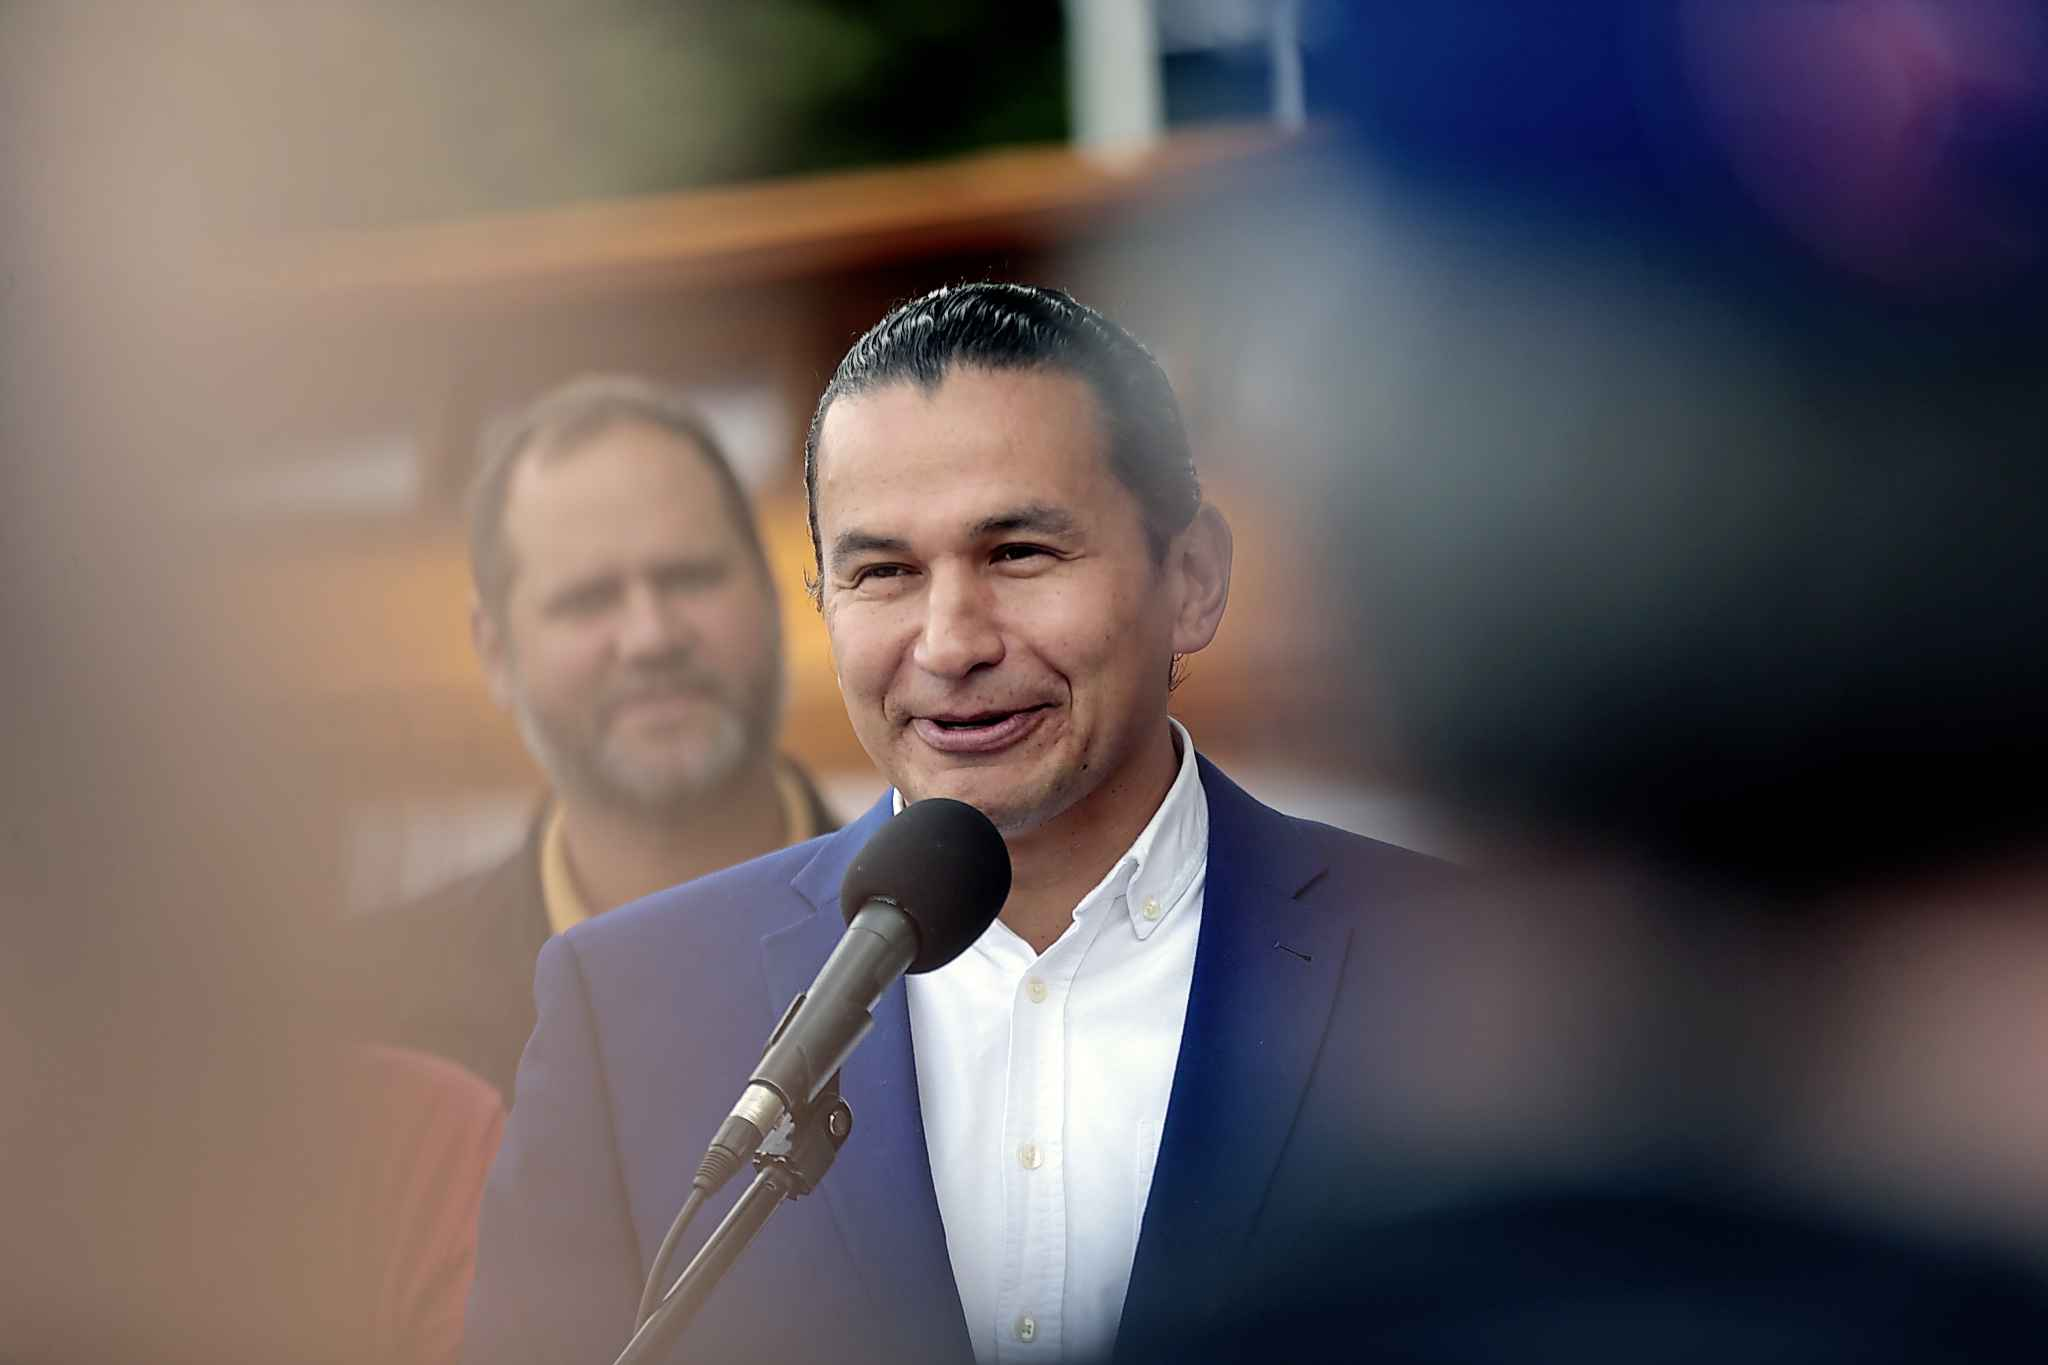 Allegations of assault and misogynist rap lyrics from his past aren't hurting NDP Leader Wab Kinew's popularity with older NDP women voters, but are damaging his popularity among younger, NDP-partisan voters, the poll says.